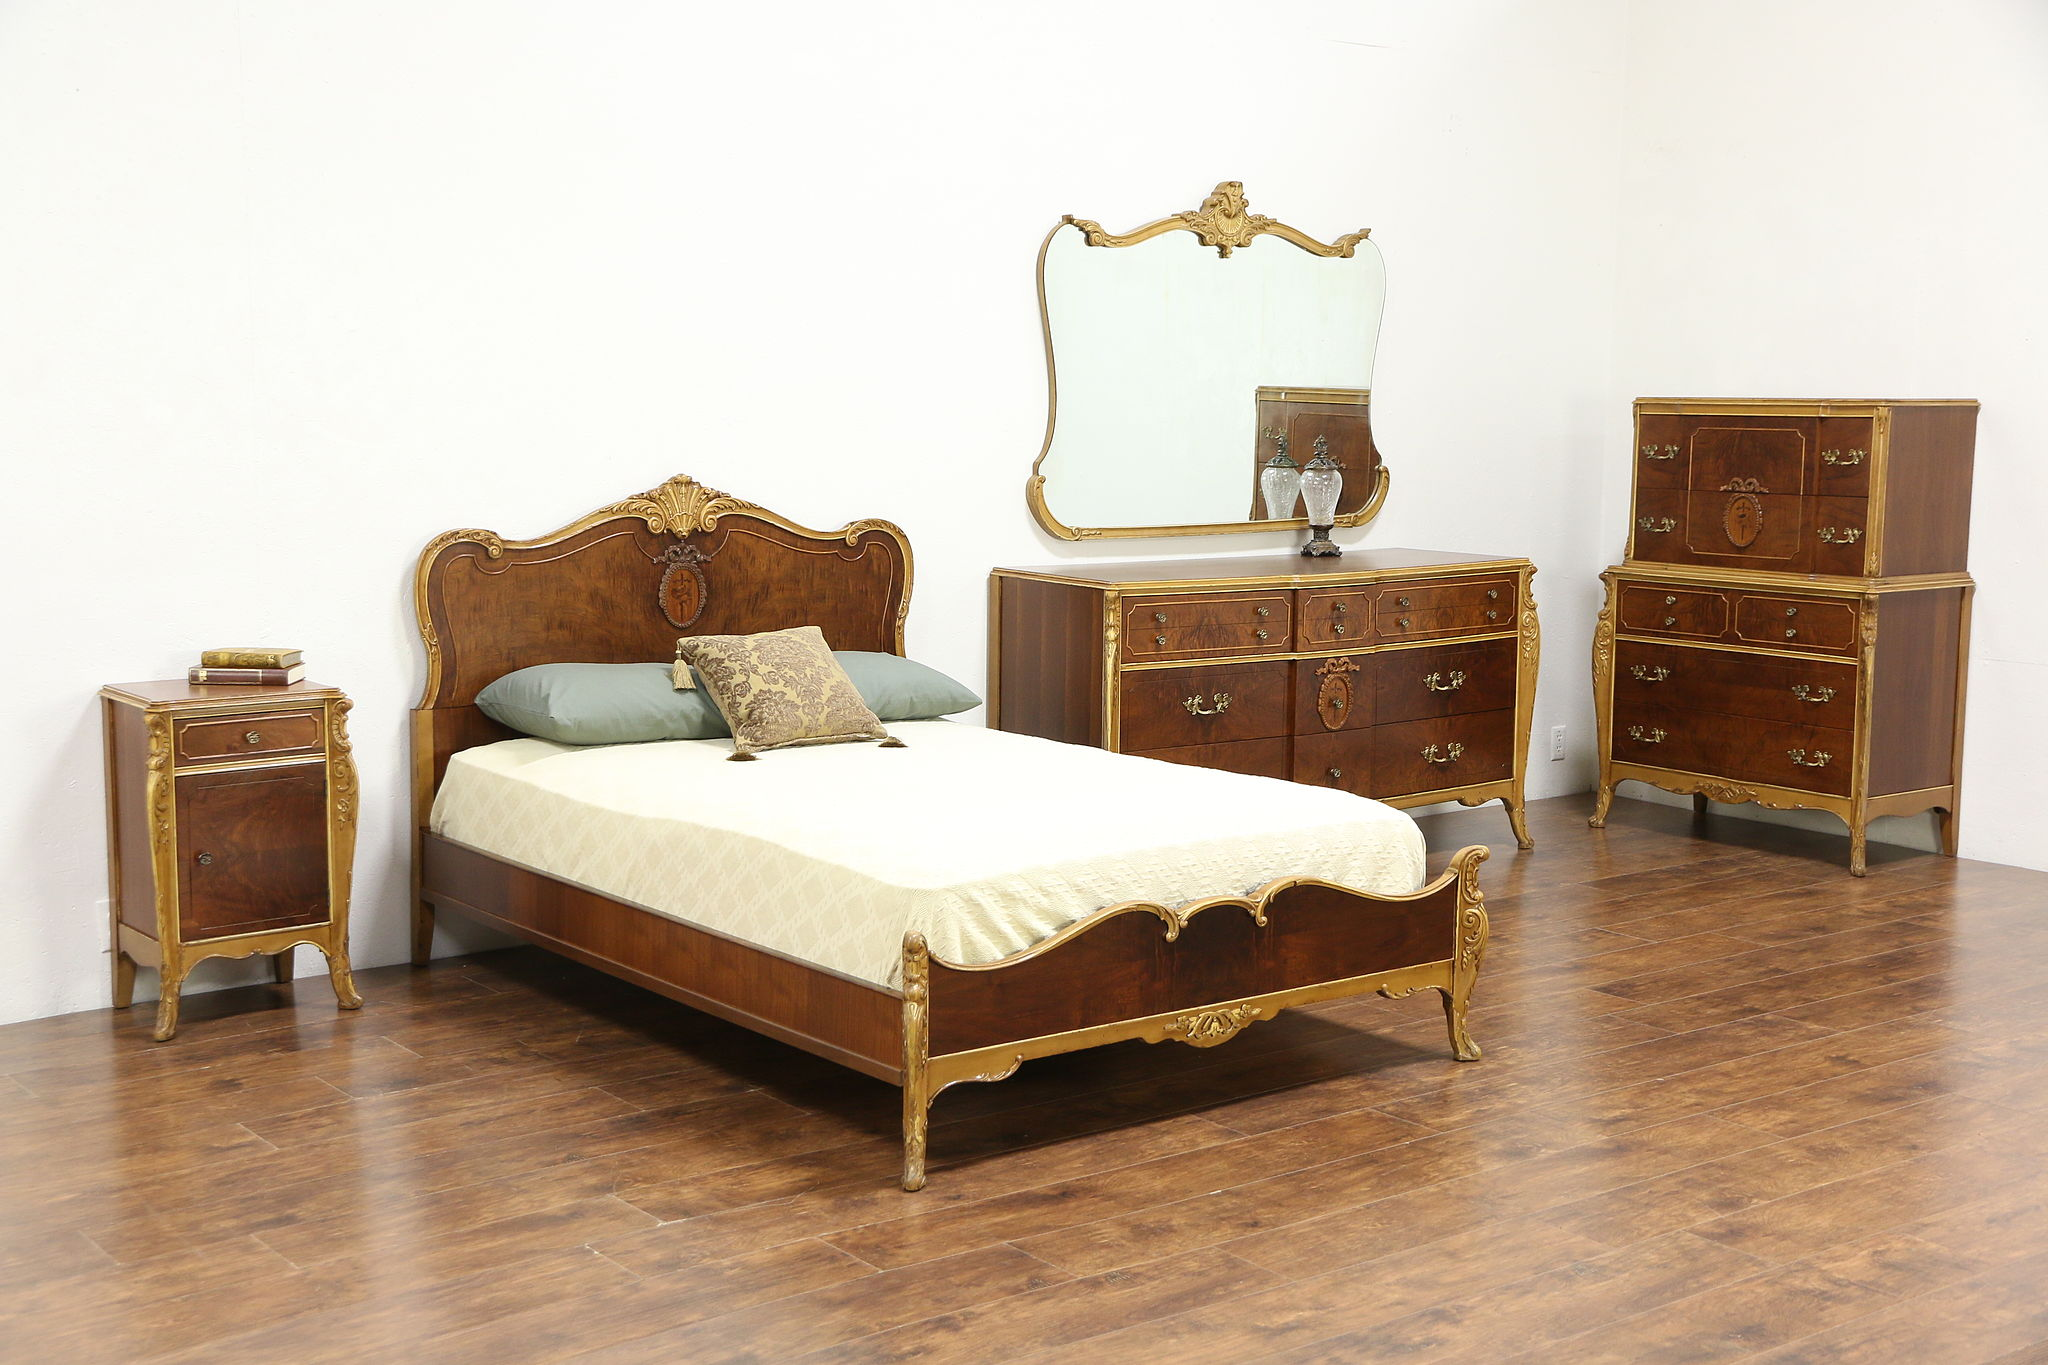 French Style 5 Pc. 1930\'s Vintage Marquetry Bedroom Set, Full Size Bed,  Joerns